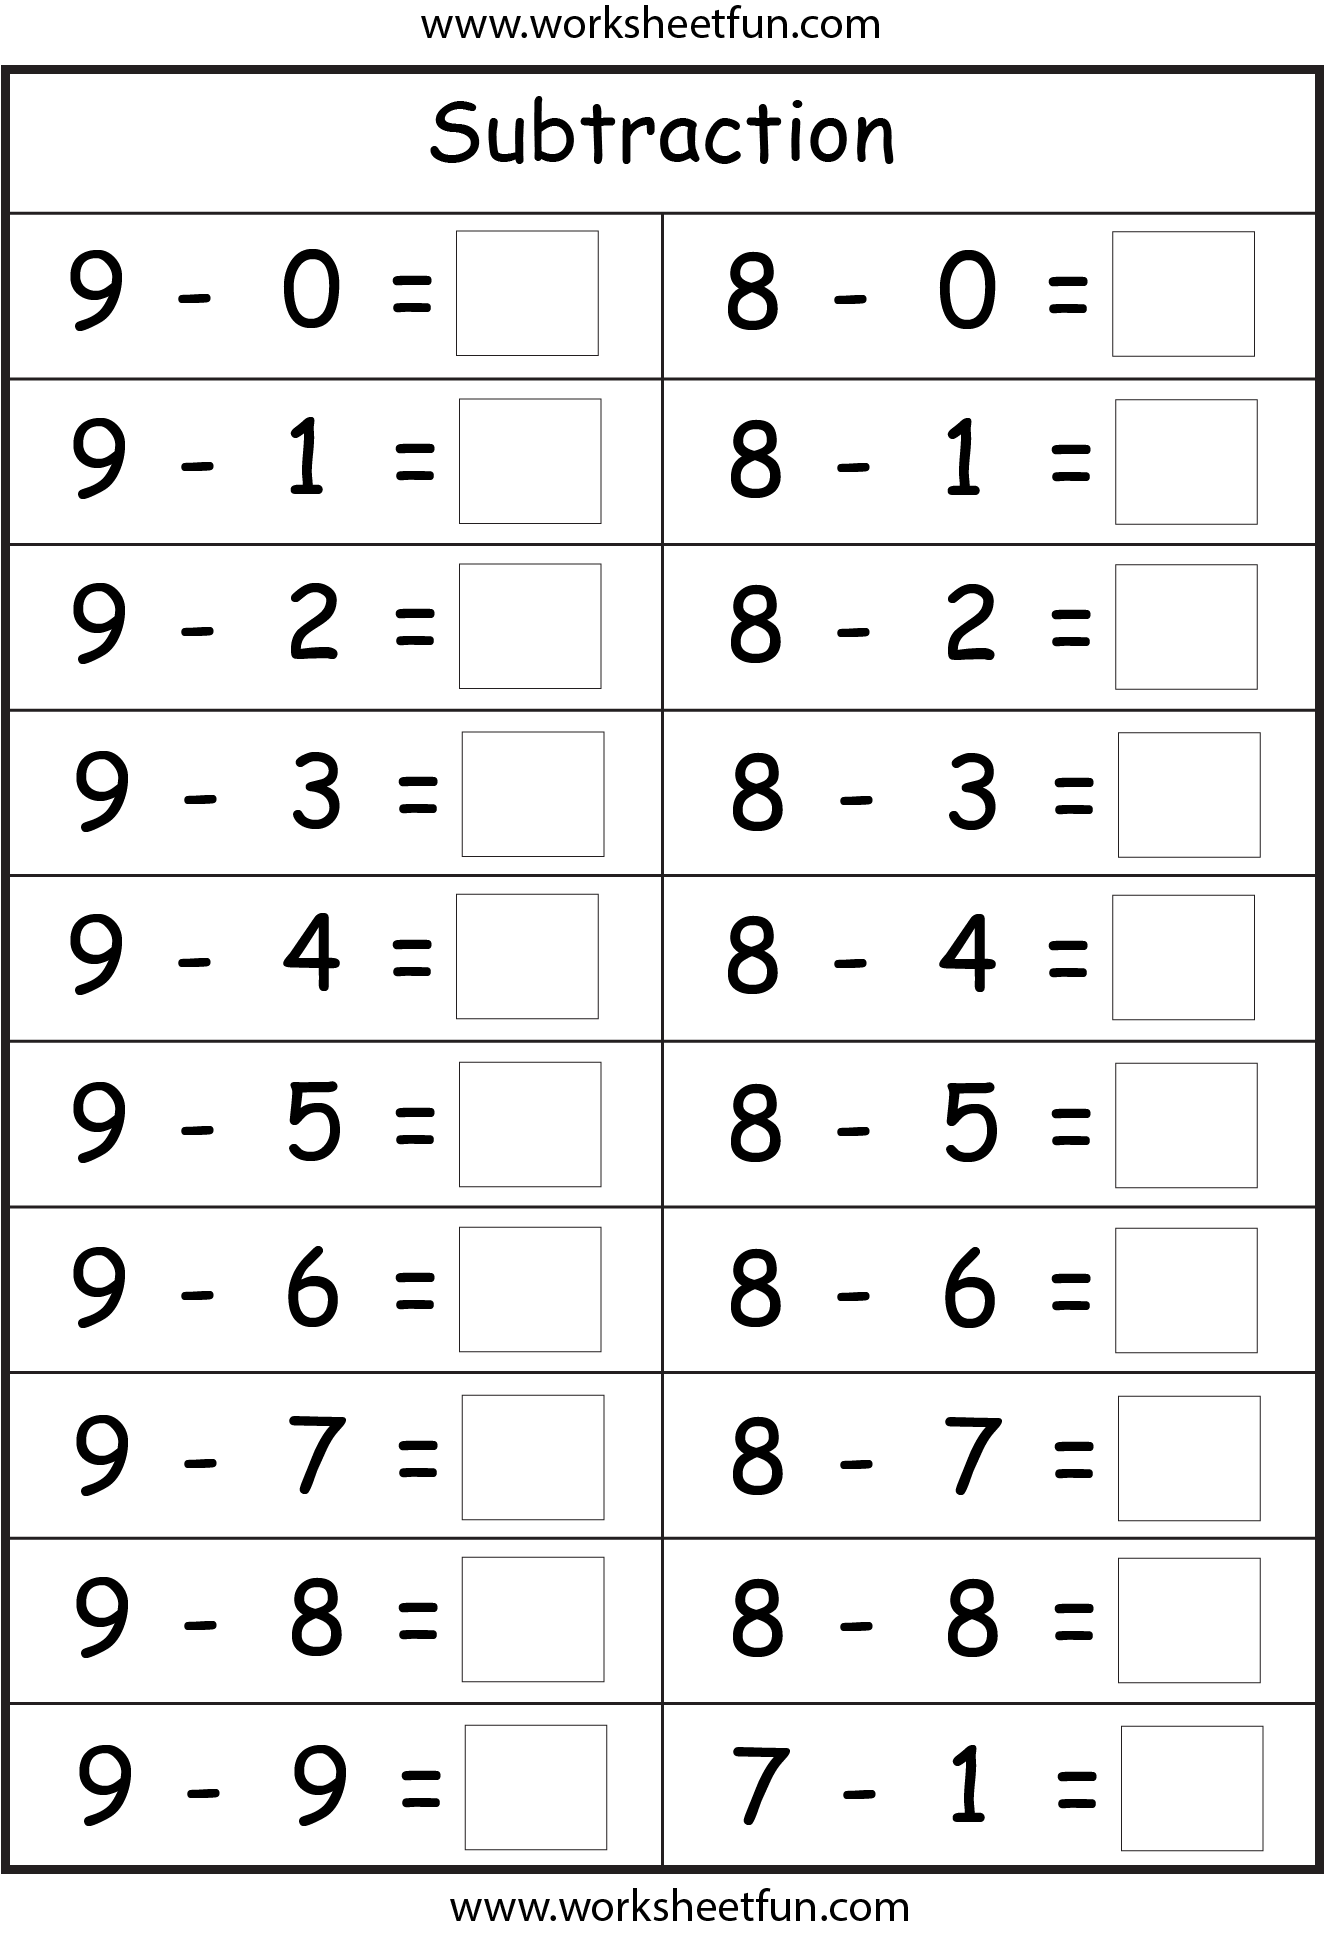 Worksheet Subtraction For Kindergarten 1000 images about subtraction on pinterest grade 1 math worksheets kindergarten and addition subtraction